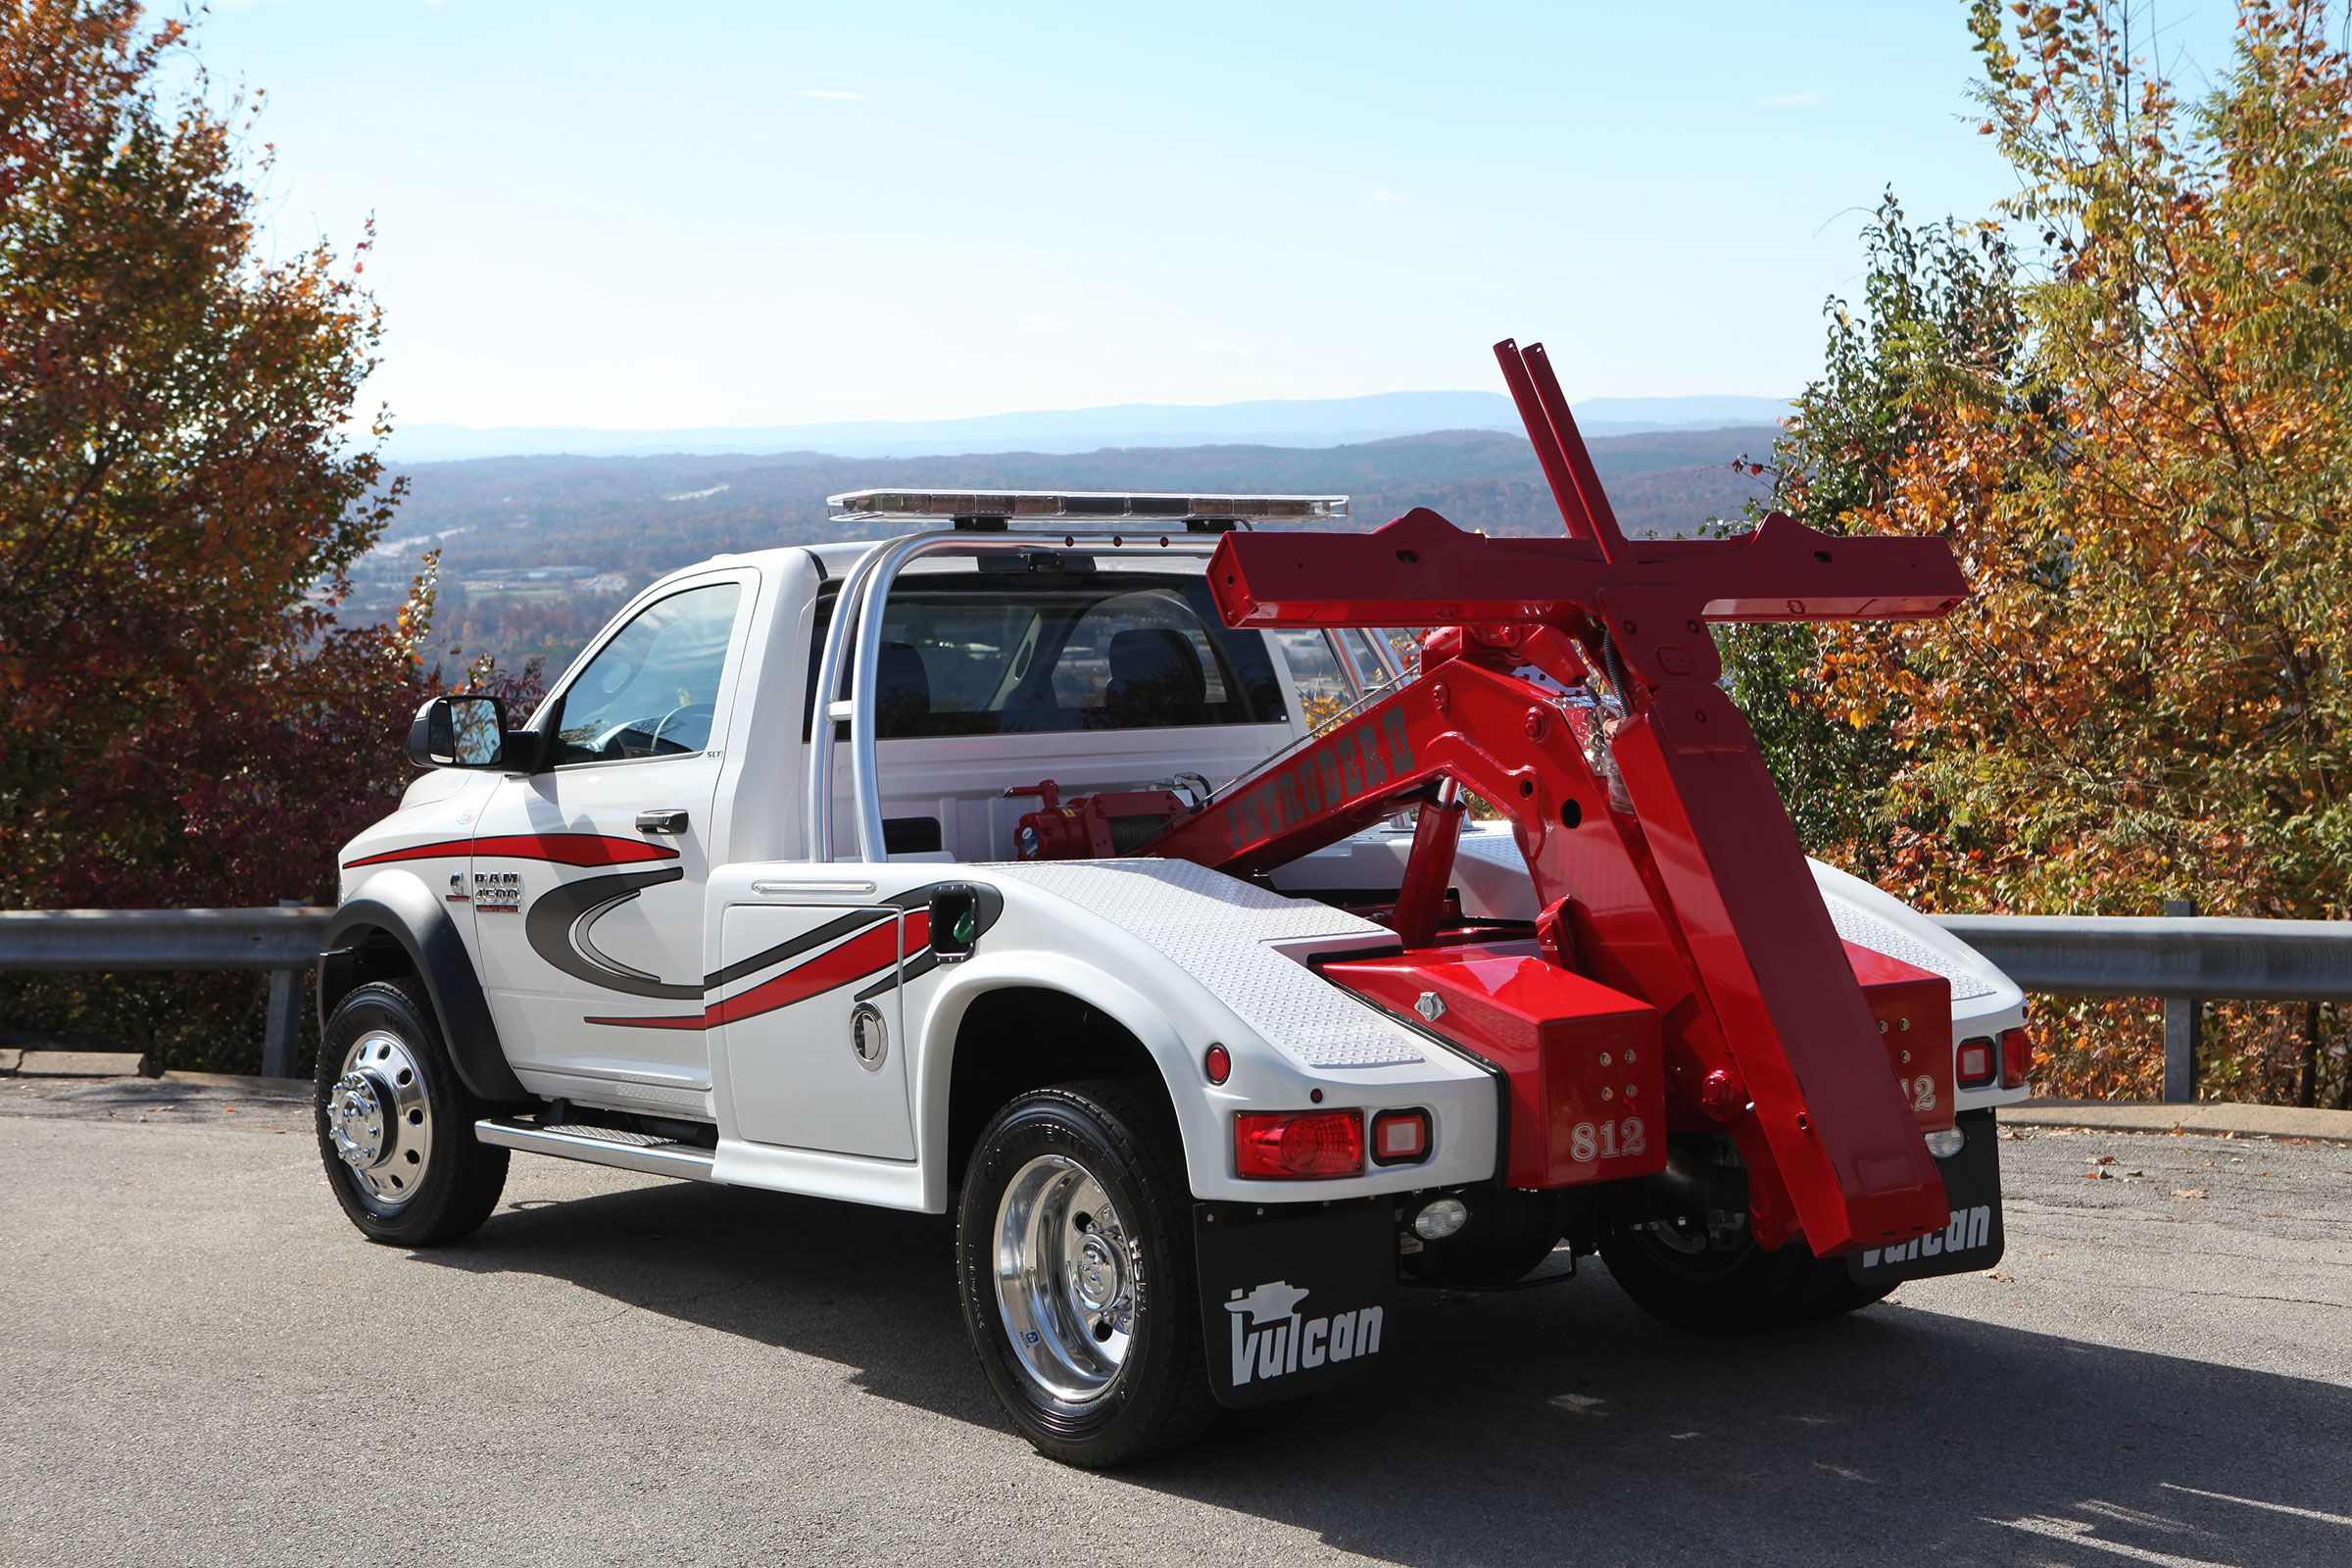 Vulcan 812 Intruder Ii Small Wrecker Flatbed Towing Tow Truck Towing Company